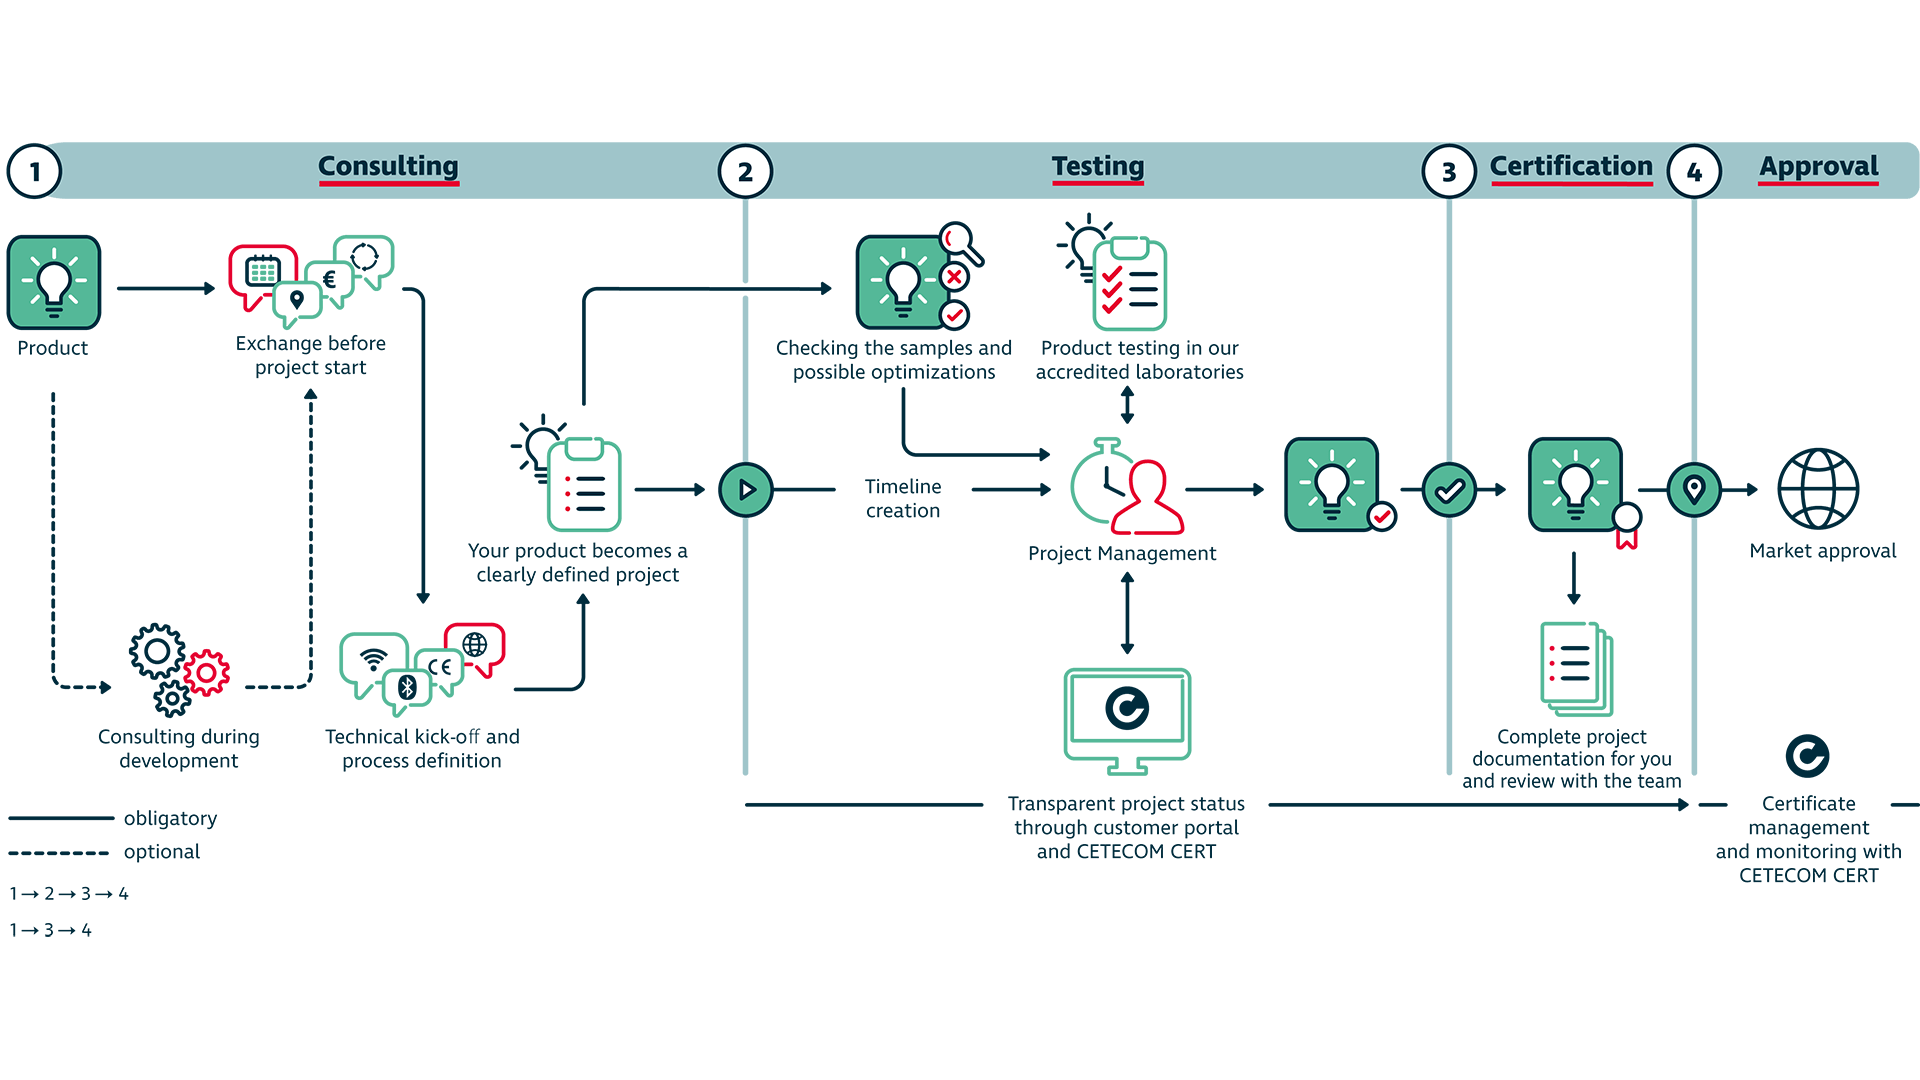 Process diagram of the possible workflows of a project when working with CETECOM